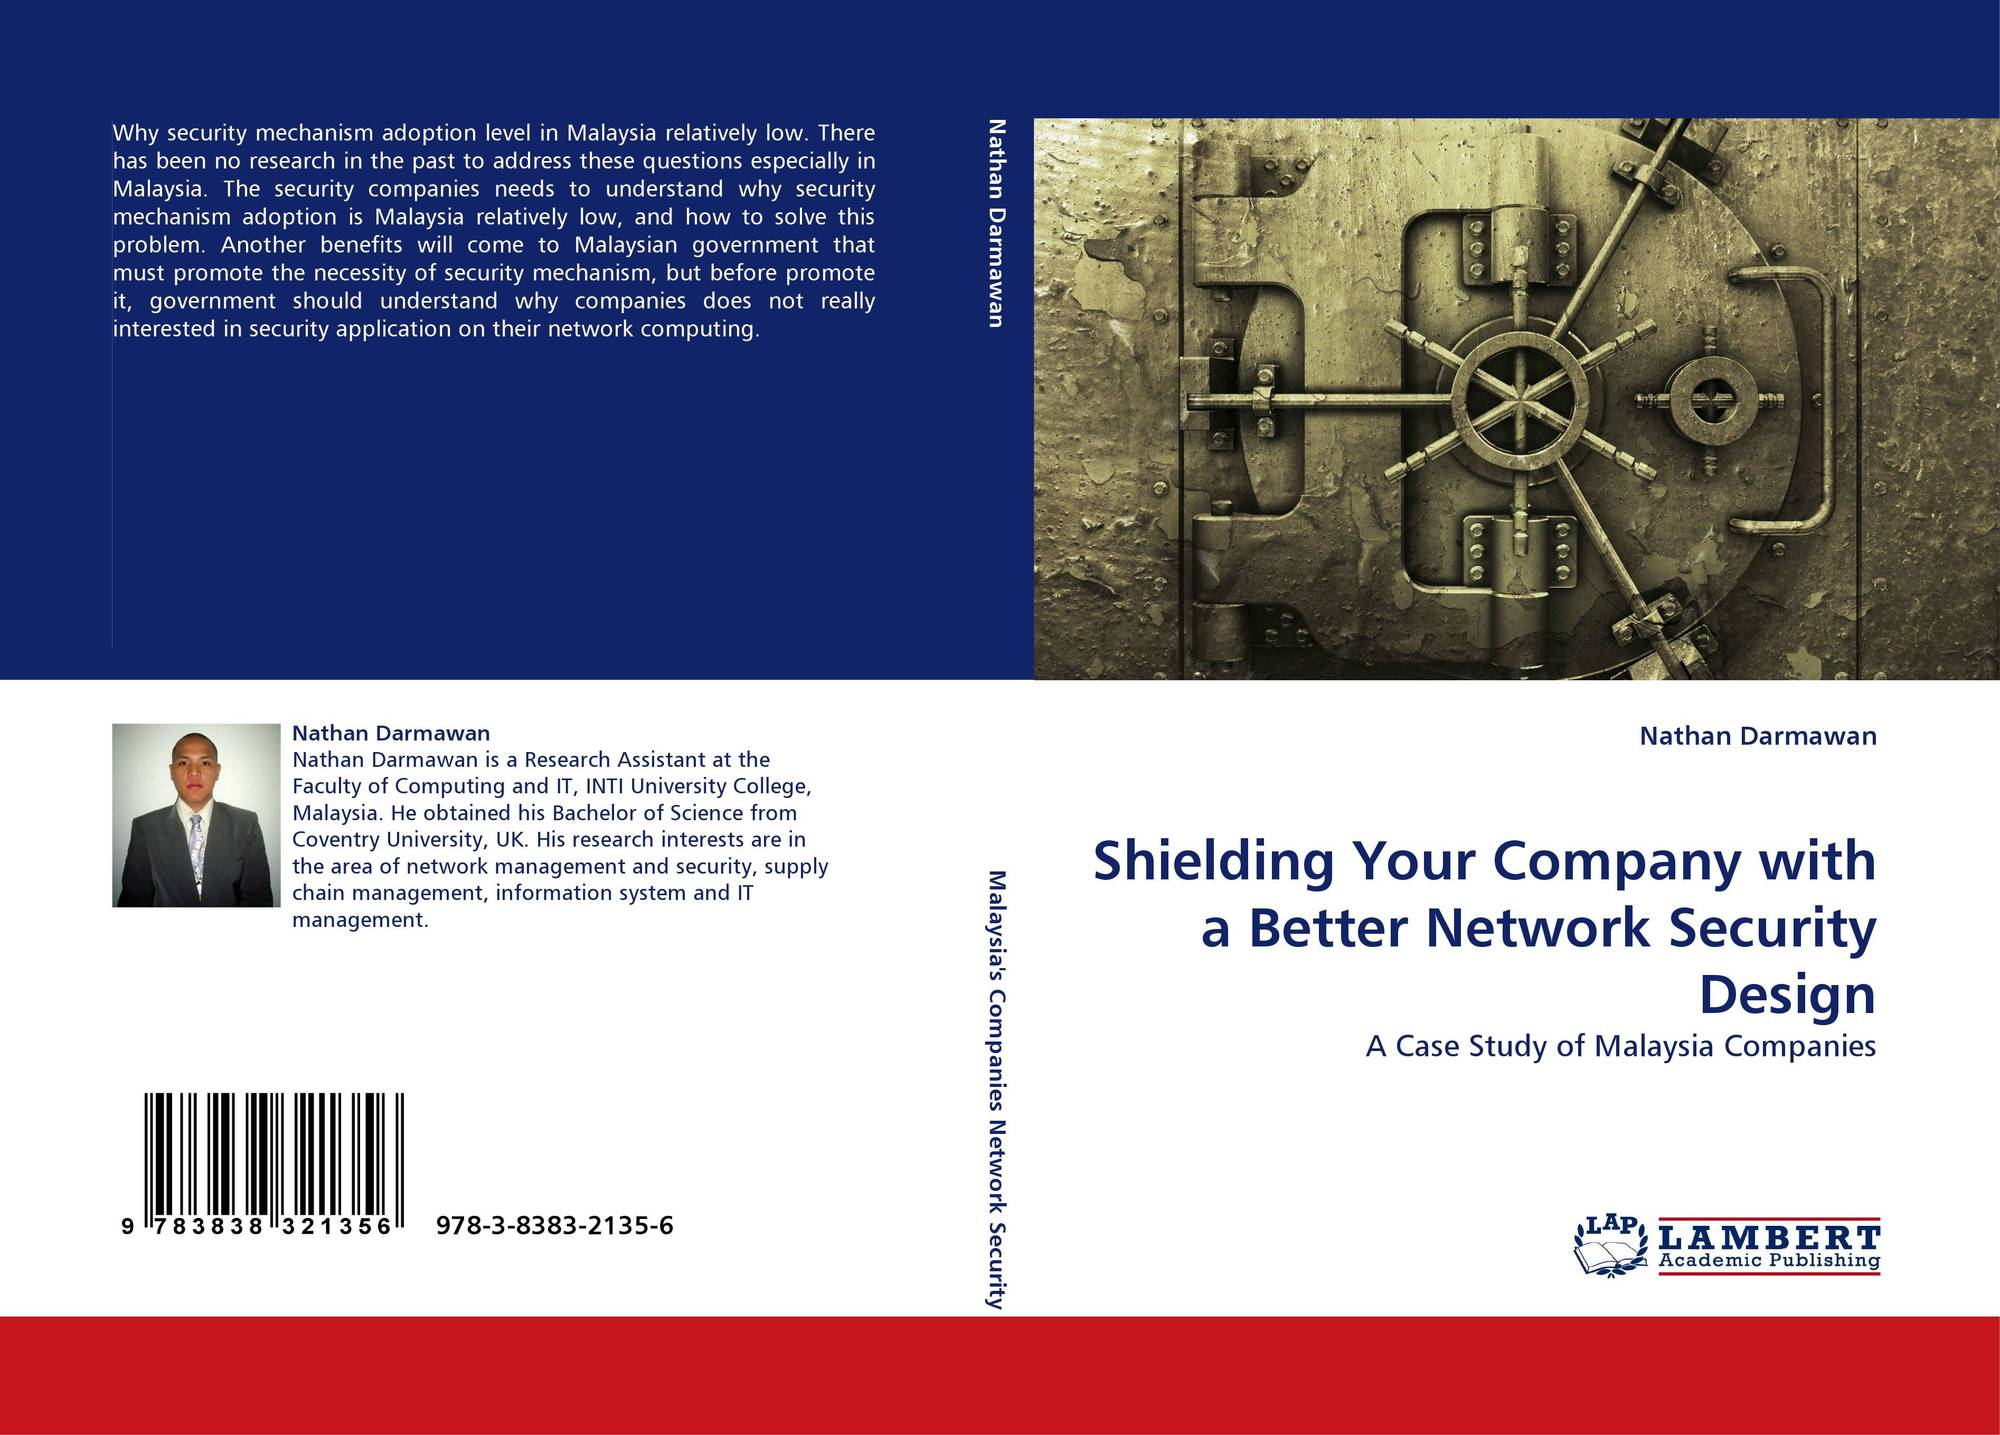 Shielding Your Company with a Better Network Security Design